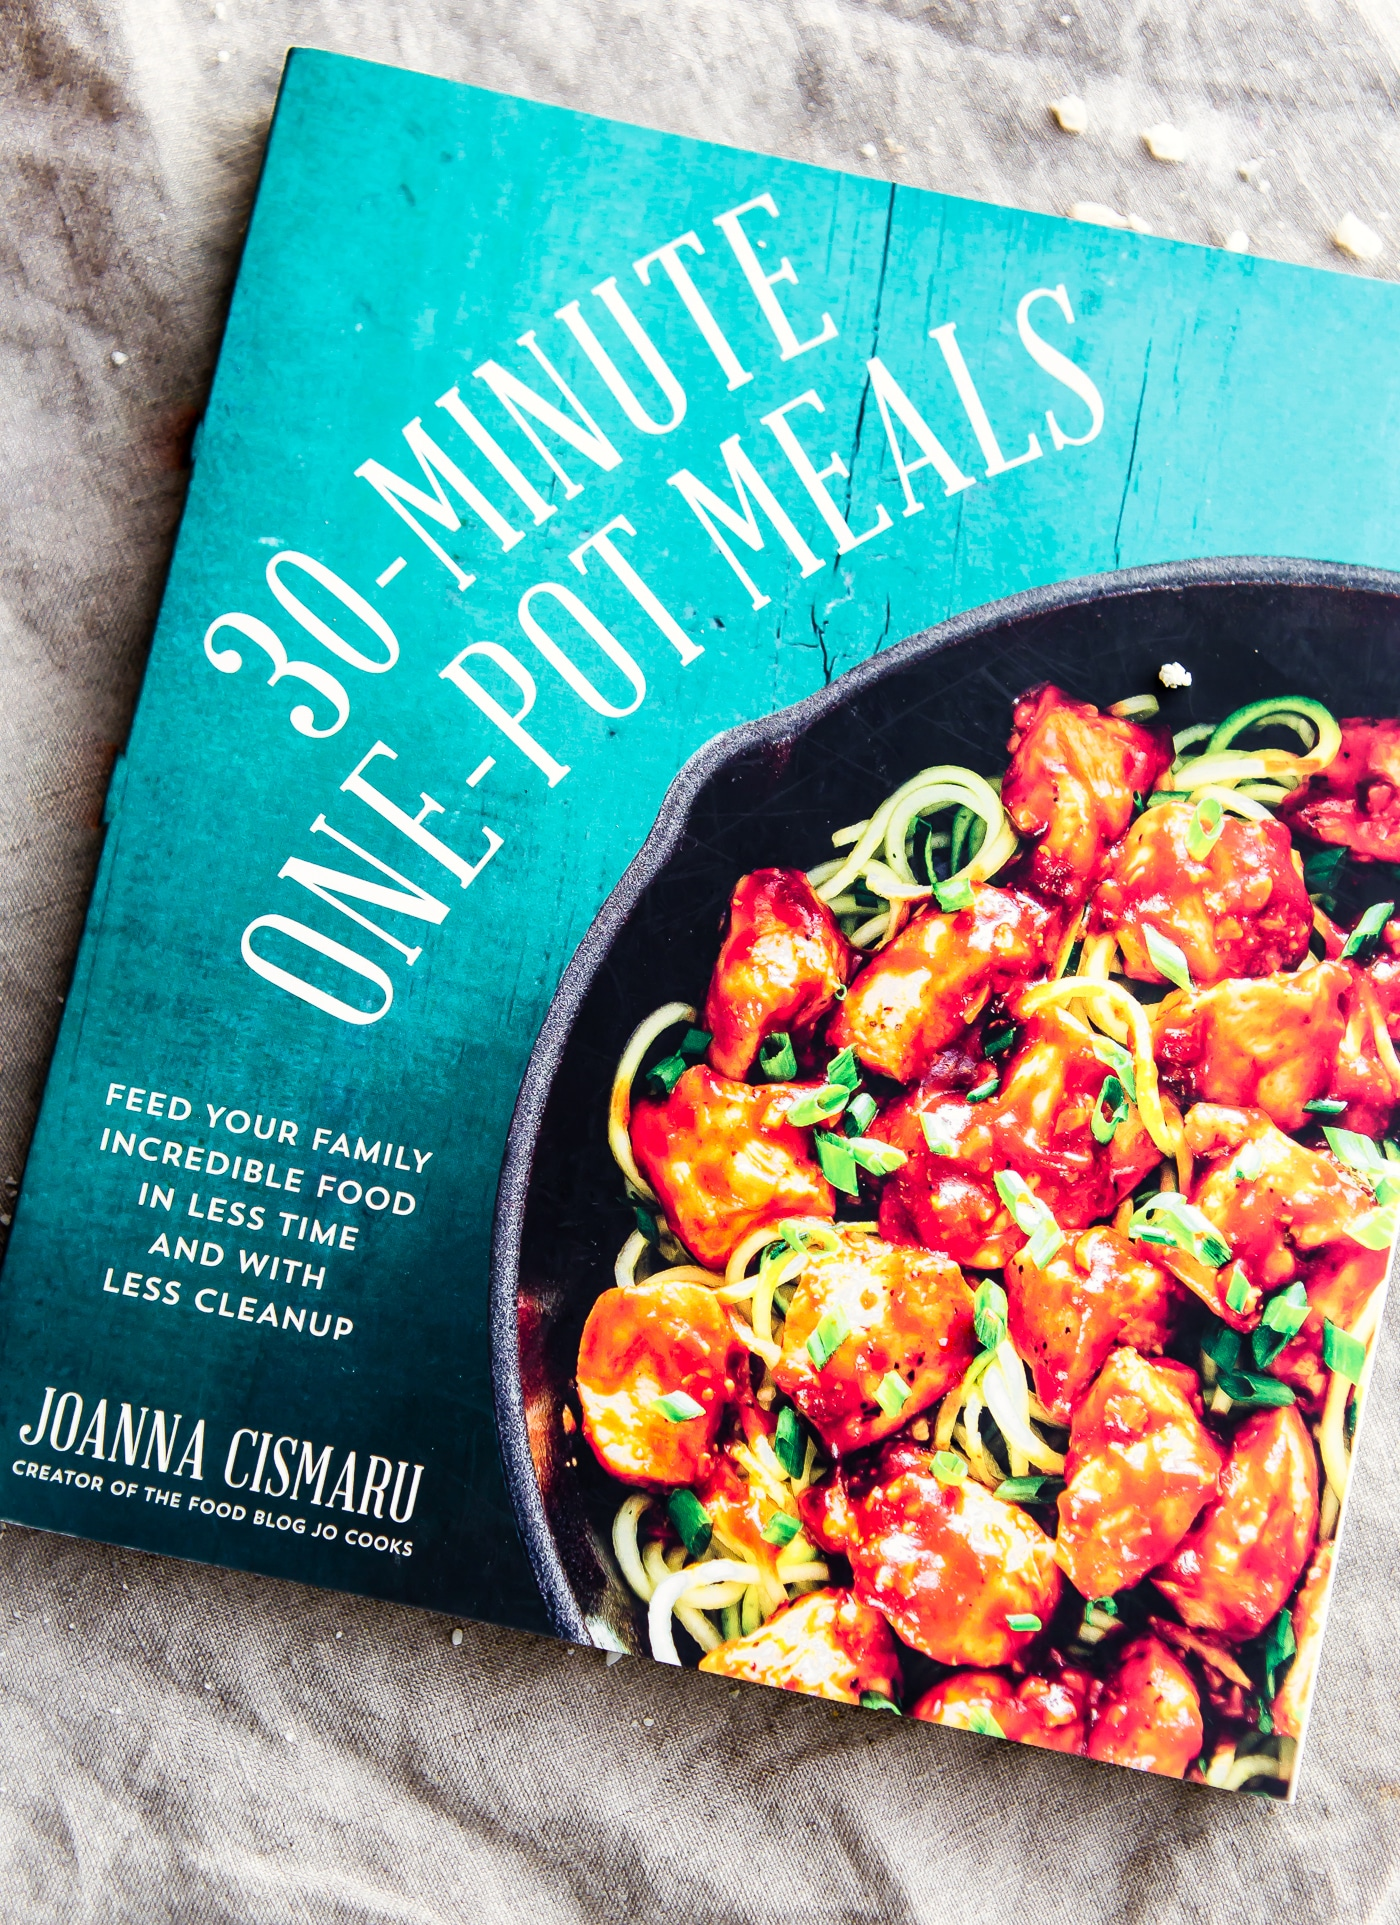 30 minute one pot meals cook book. Recipe for Zippy Pear Goat Cheese Kale Salad {Vegetarian, Gluten Free}